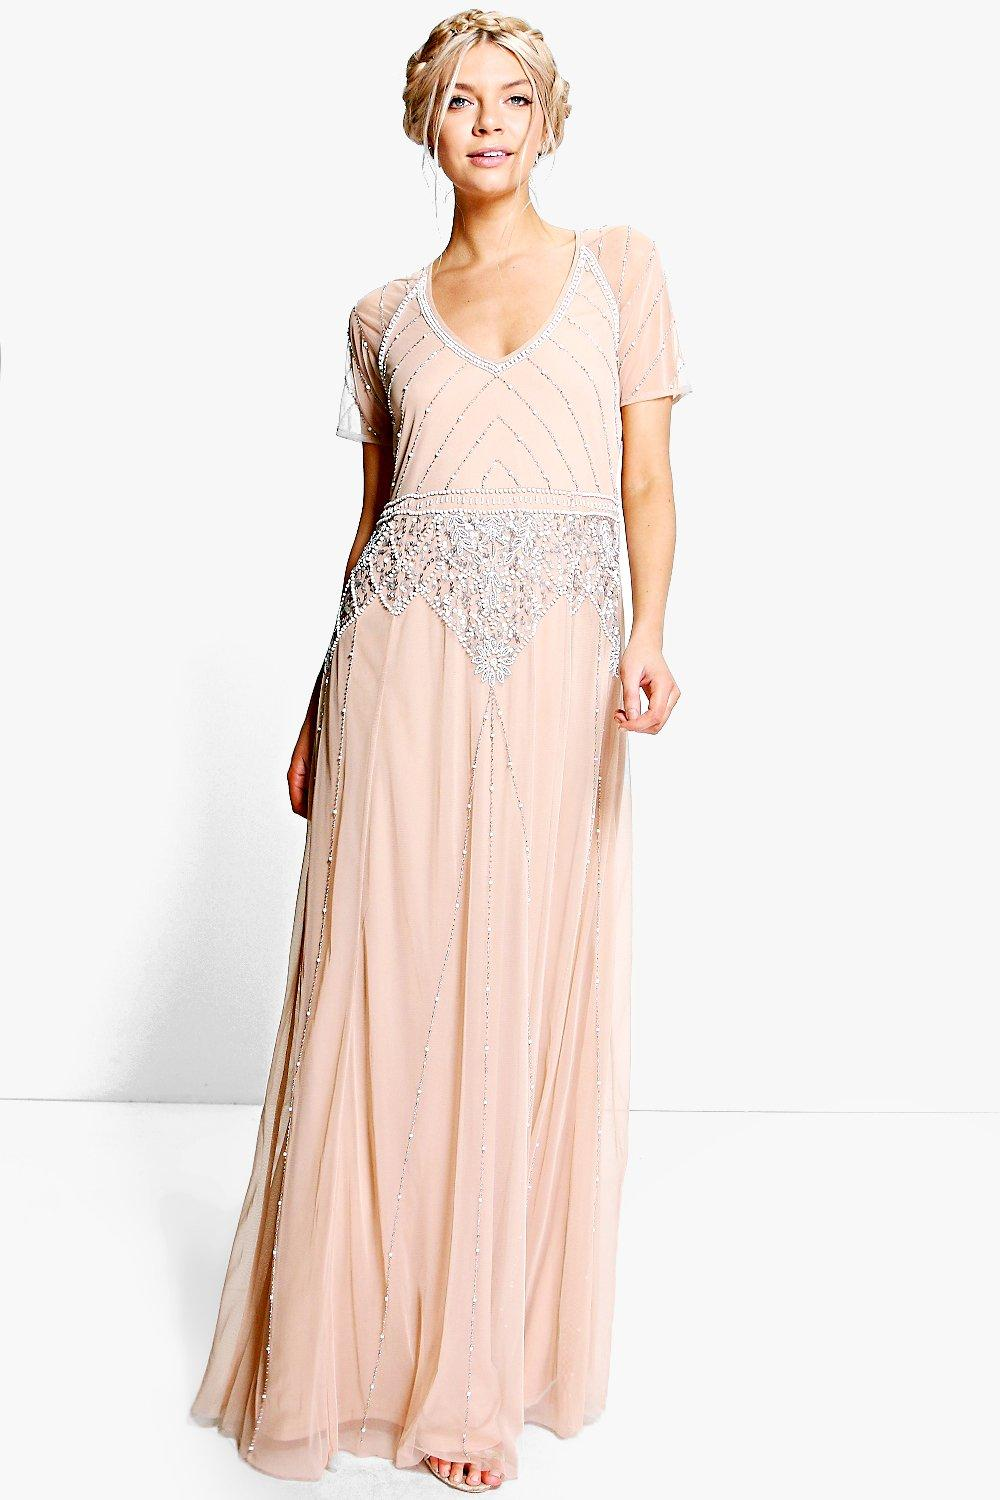 1920s Dresses UK | Flapper, Gatsby, Downton Abbey Dress Womens Boutique Beaded Cap Sleeve Maxi Bridesmaid Dress - Beige - 10 $70.00 AT vintagedancer.com